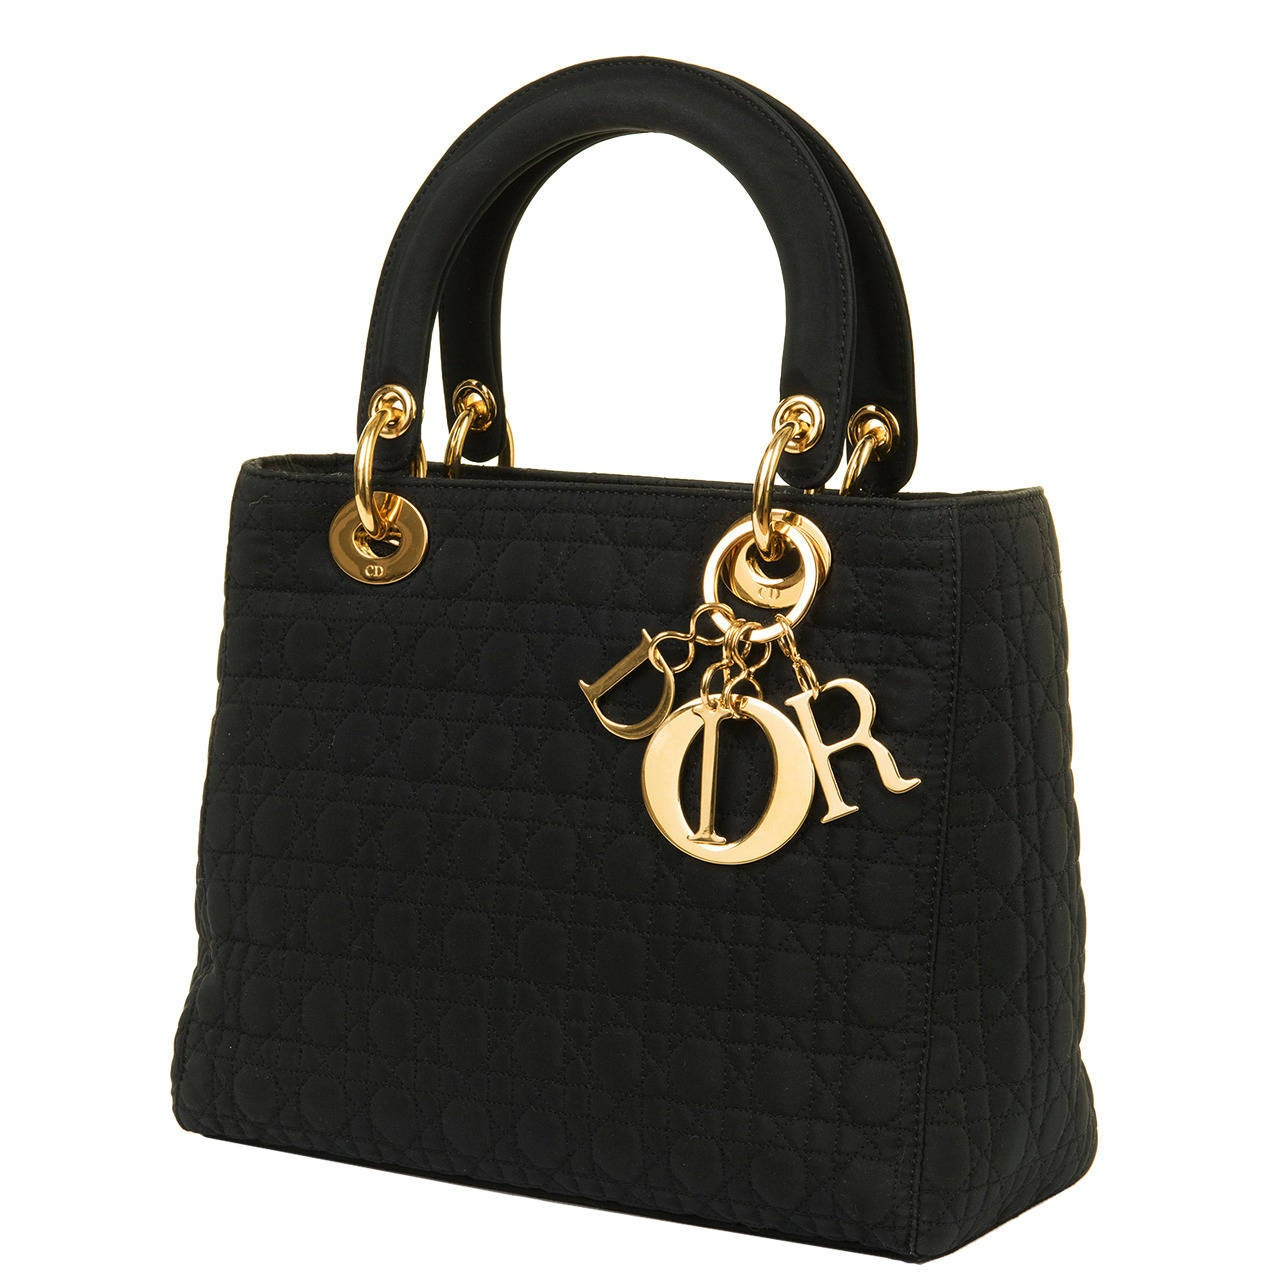 WOW! Dior 'Lady Dior' 25cm Black Quilted Bag with Goldtone Hardware 1